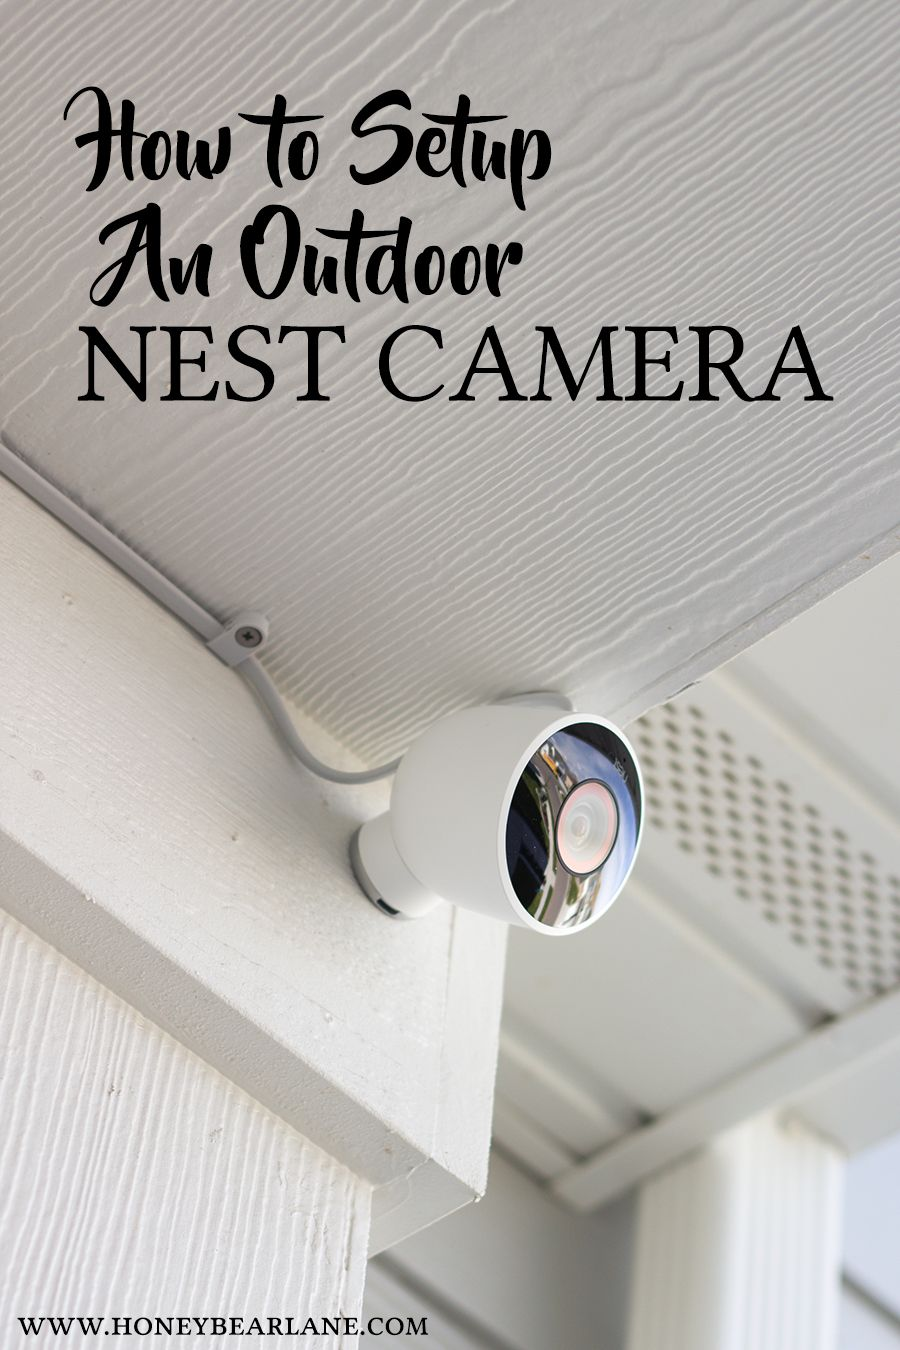 If Youre Looking For The Perfect Outdoor Security Camera This Is The One